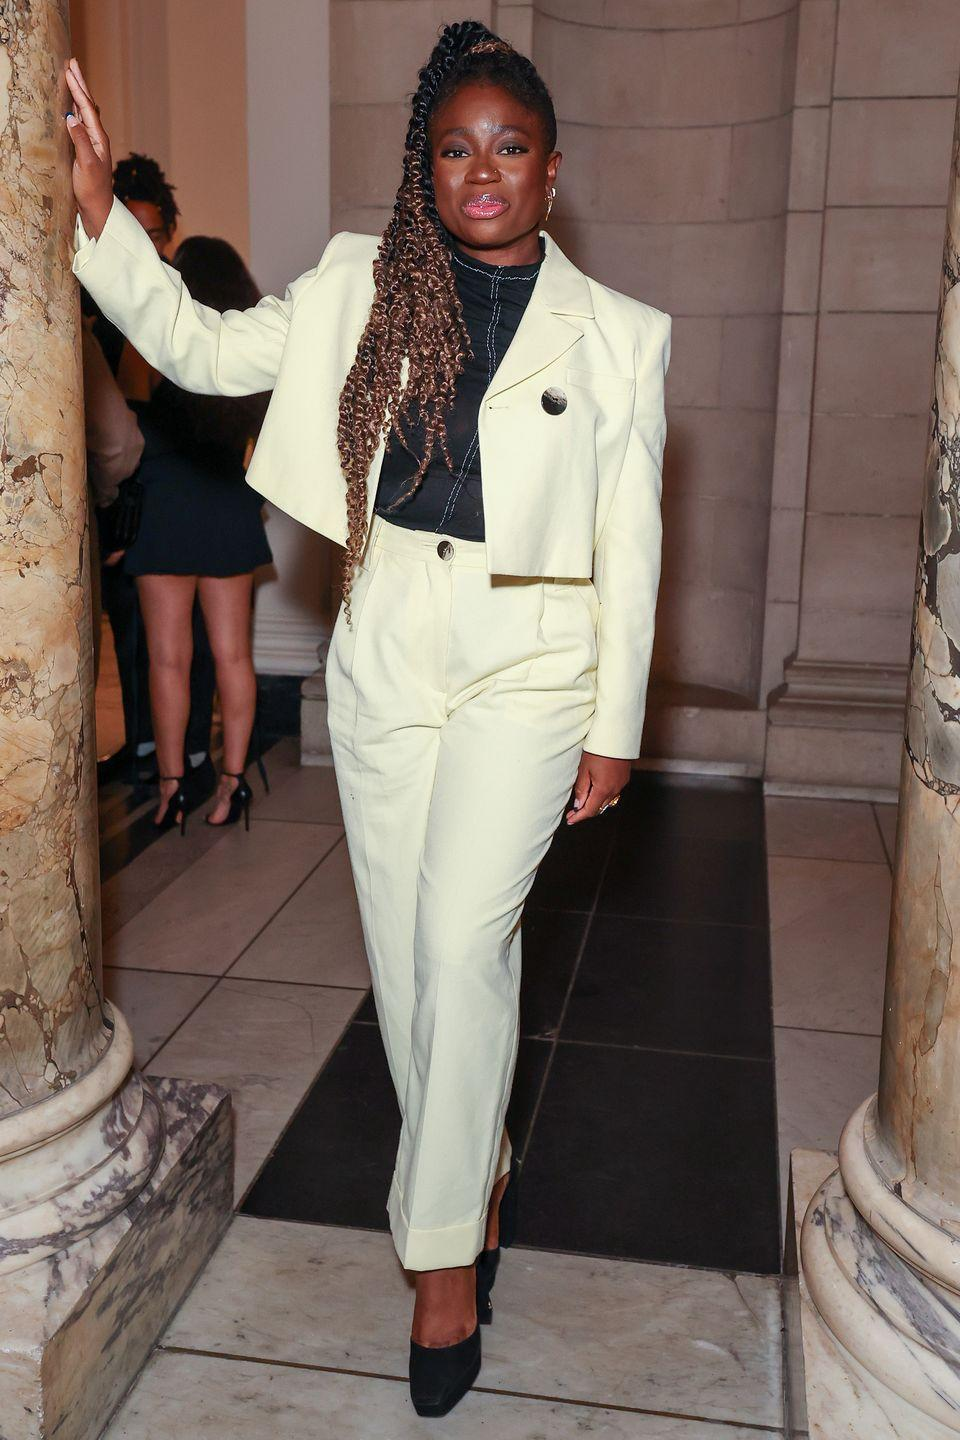 <p><strong>19 September</strong></p><p>Clara Amfo attended the Richard Malone show during London Fashion Week in a statement-making cream suit. </p>